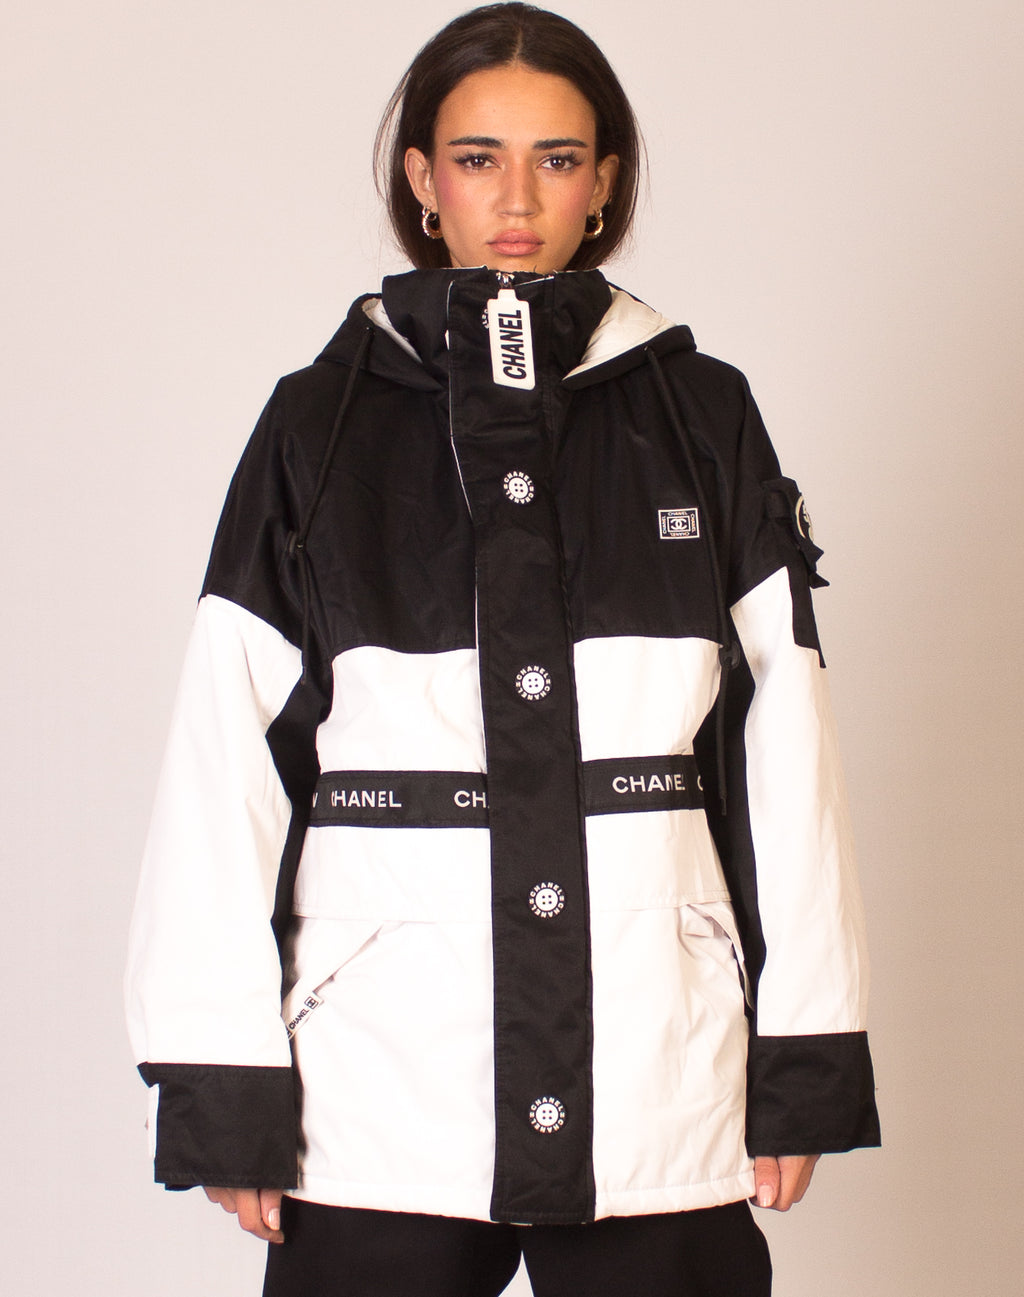 FAUX CHANEL MONOCHROME PUFFER COAT